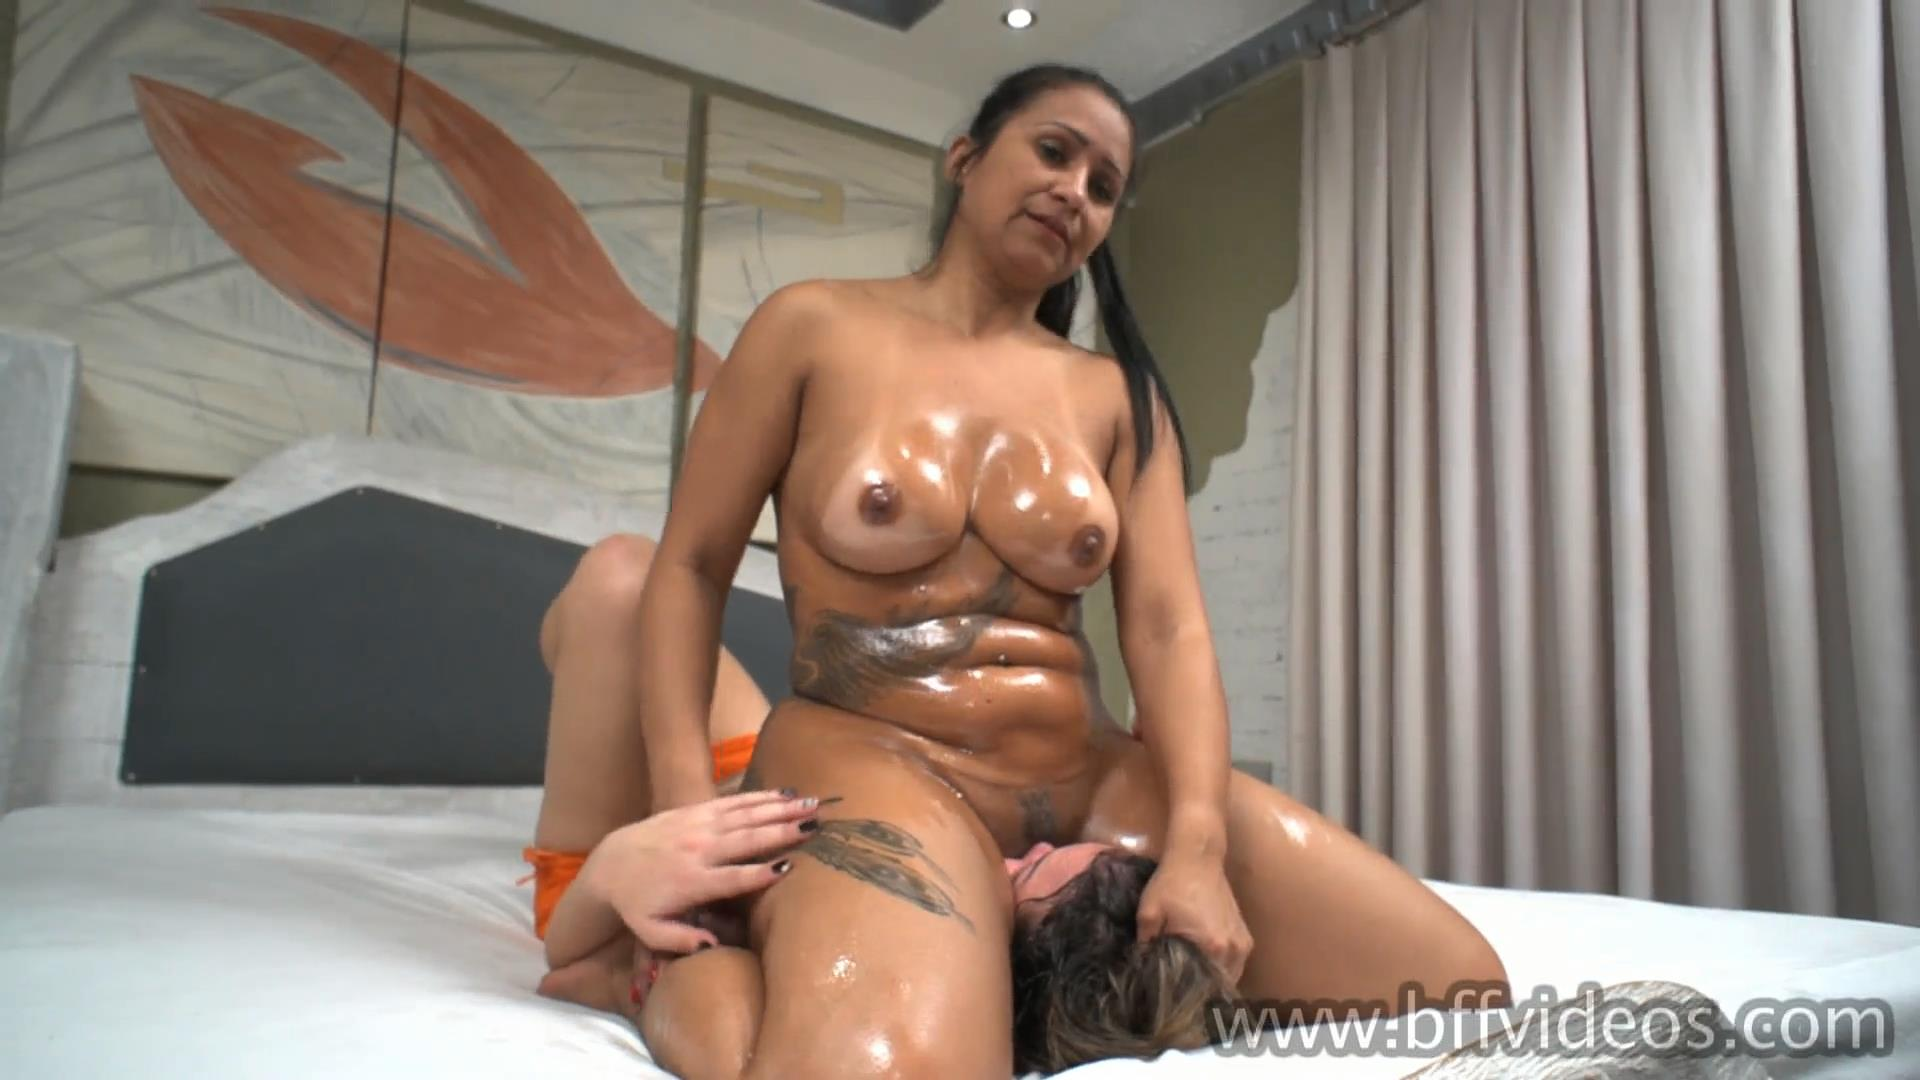 Slave Yasmin, Goddess Priscila In Scene: Yasmin First Time Under Aggressive Priscila Full - BFFVIDEOS - FULL HD/1080p/MP4